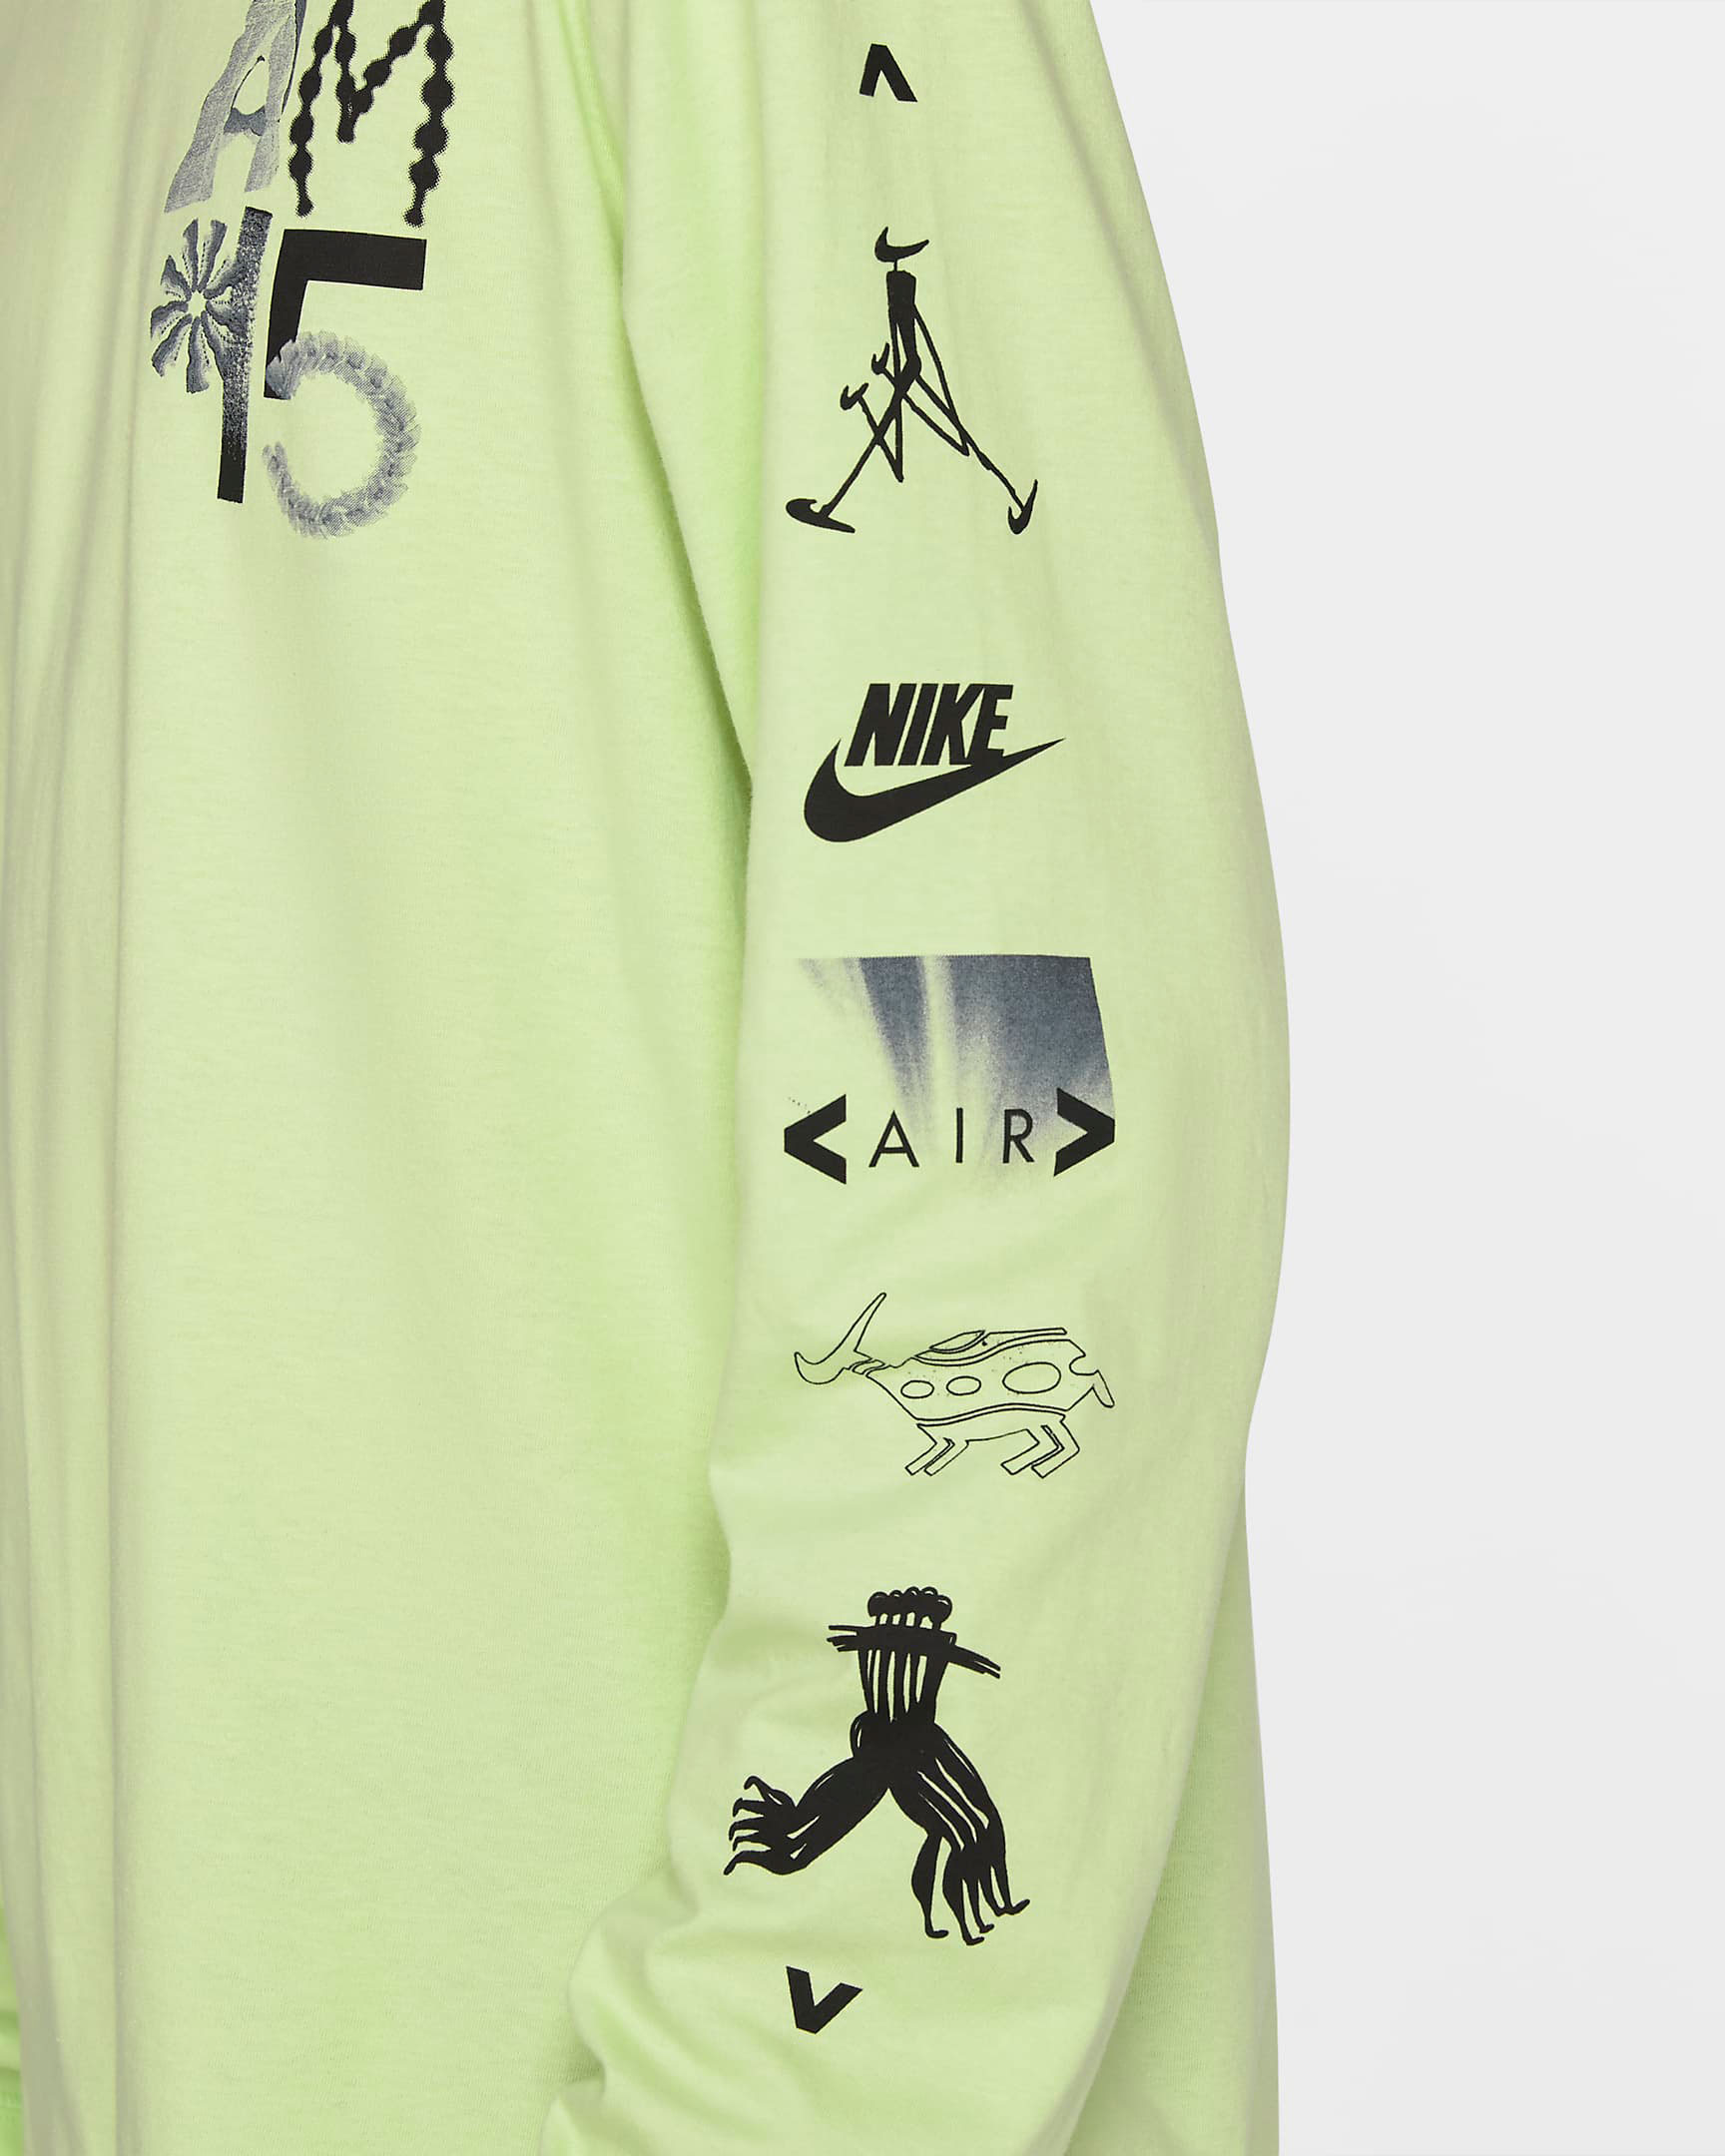 nike-air-max-95-neon-2020-long-sleeve-shirt-5